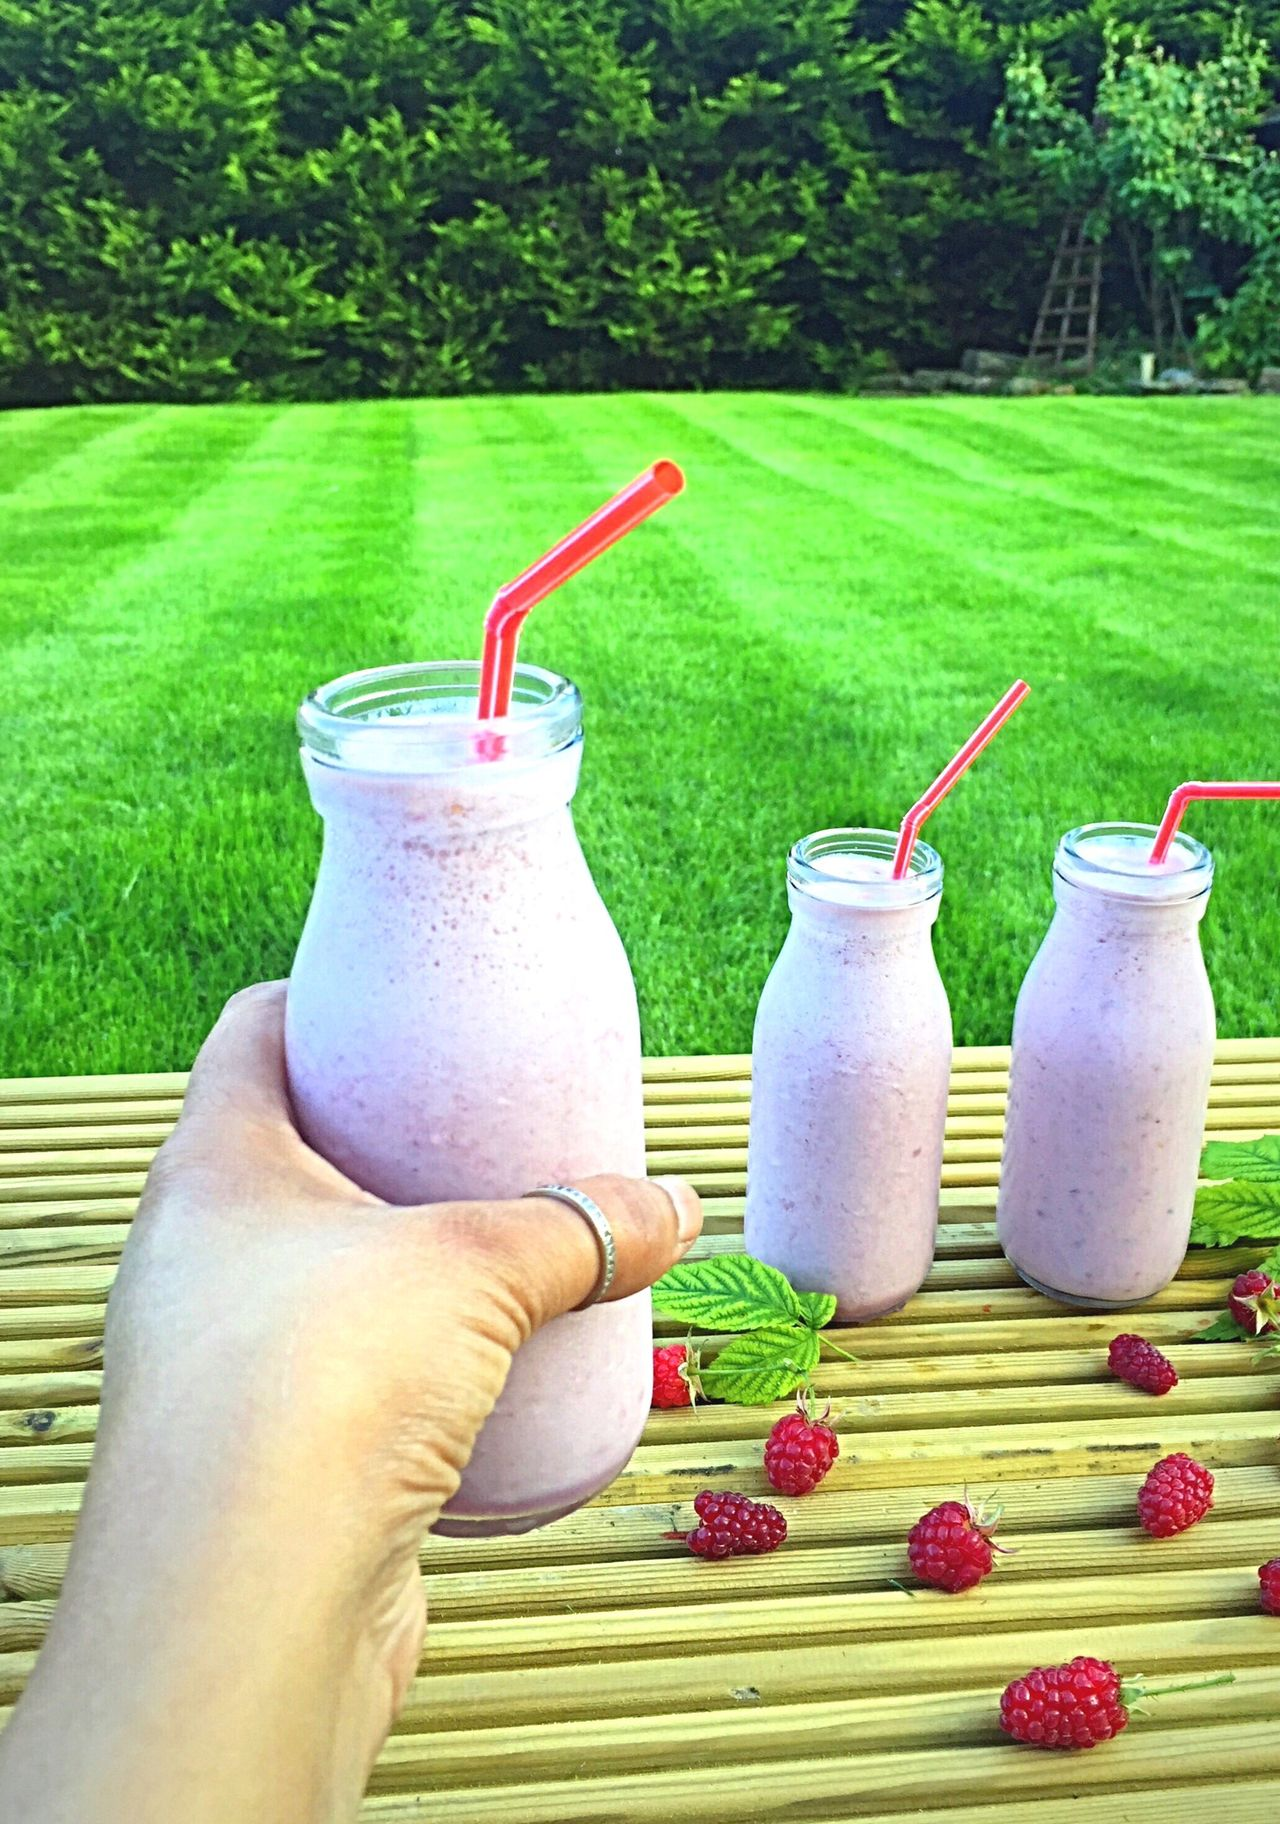 Raspberries Smoothies Smoothie Time  Raspberryseason Homegrown Garden Garden Photography Summer ☀ Healthy Drinks Superfoodsuperboost Delicious Beverage Refreshment Milkshake♥